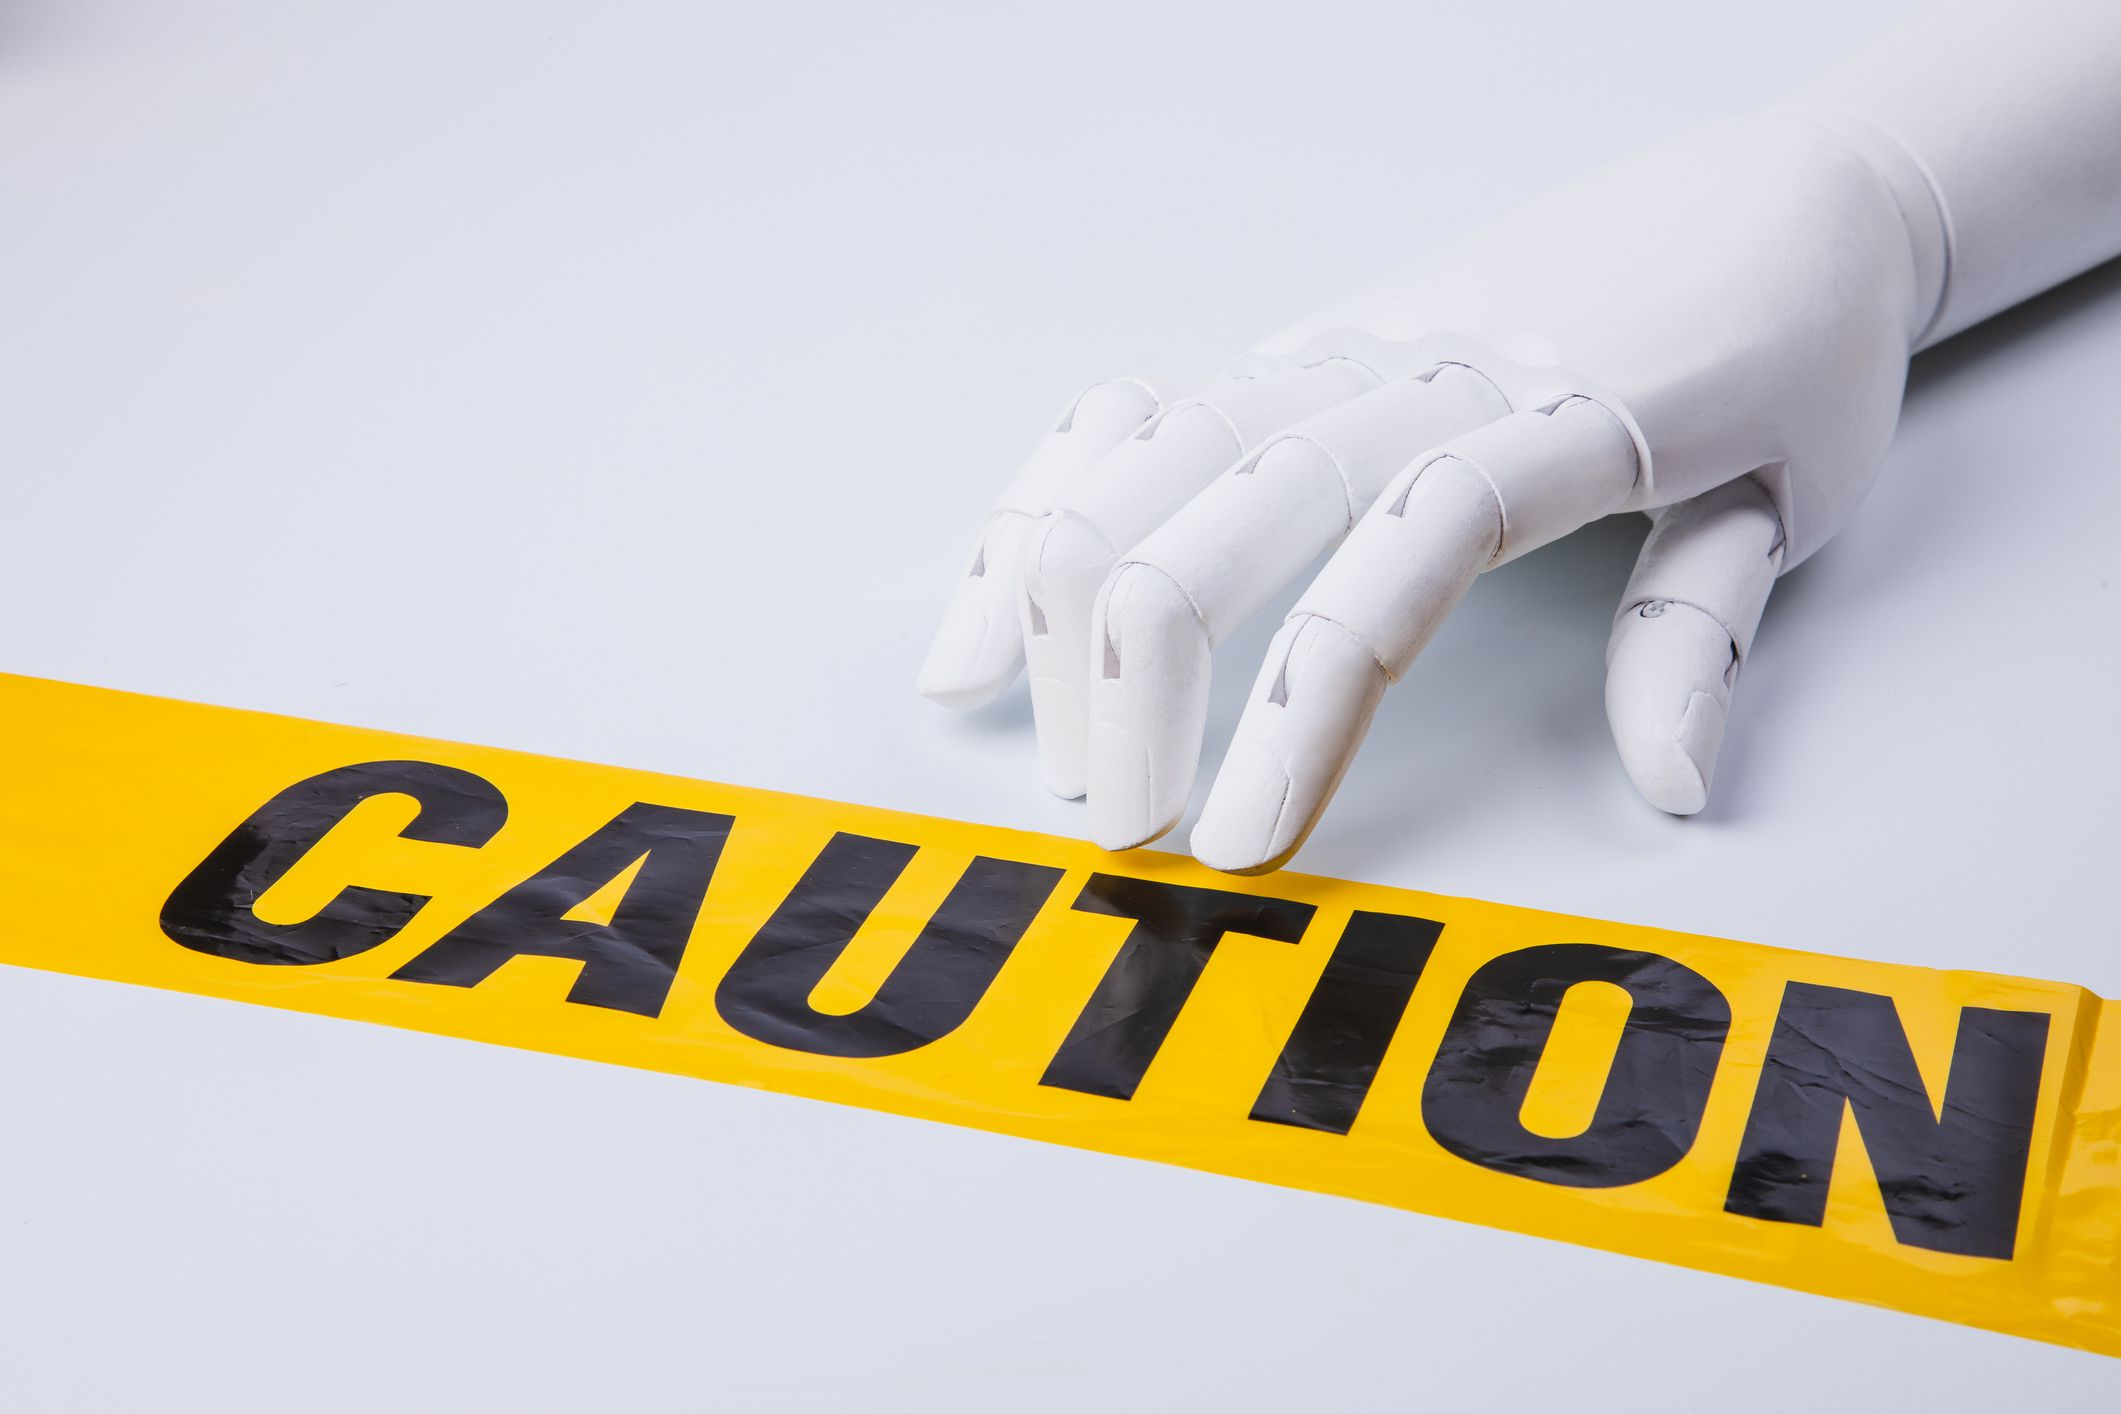 A white robot hand touching a piece of caution tape against a white background.